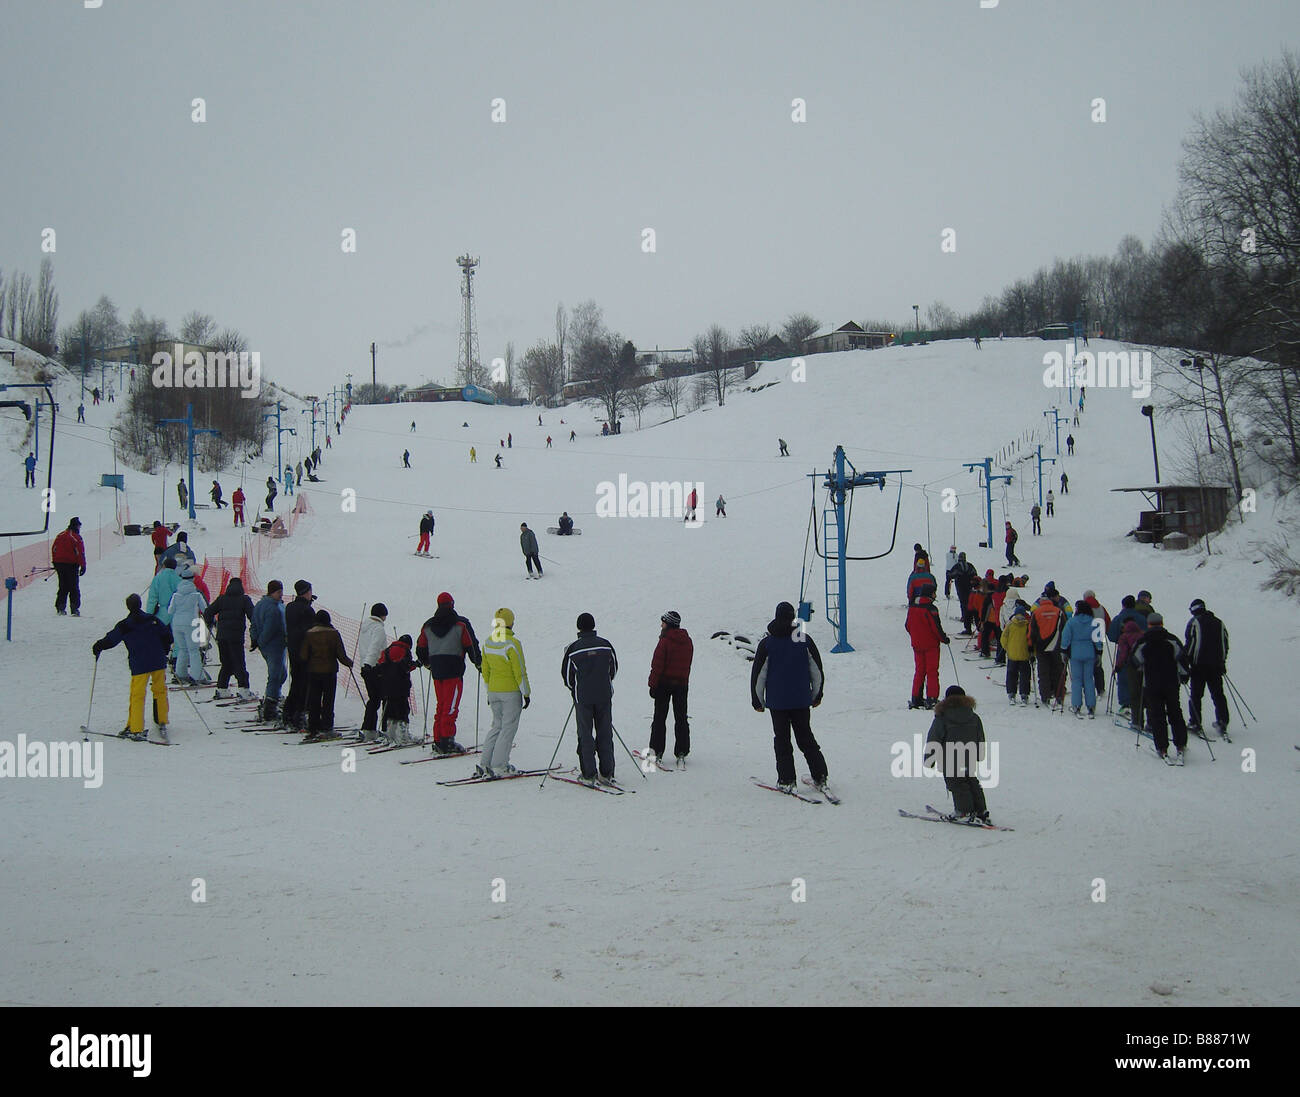 Ski Riders at the Valley, downhill skiing - Stock Image